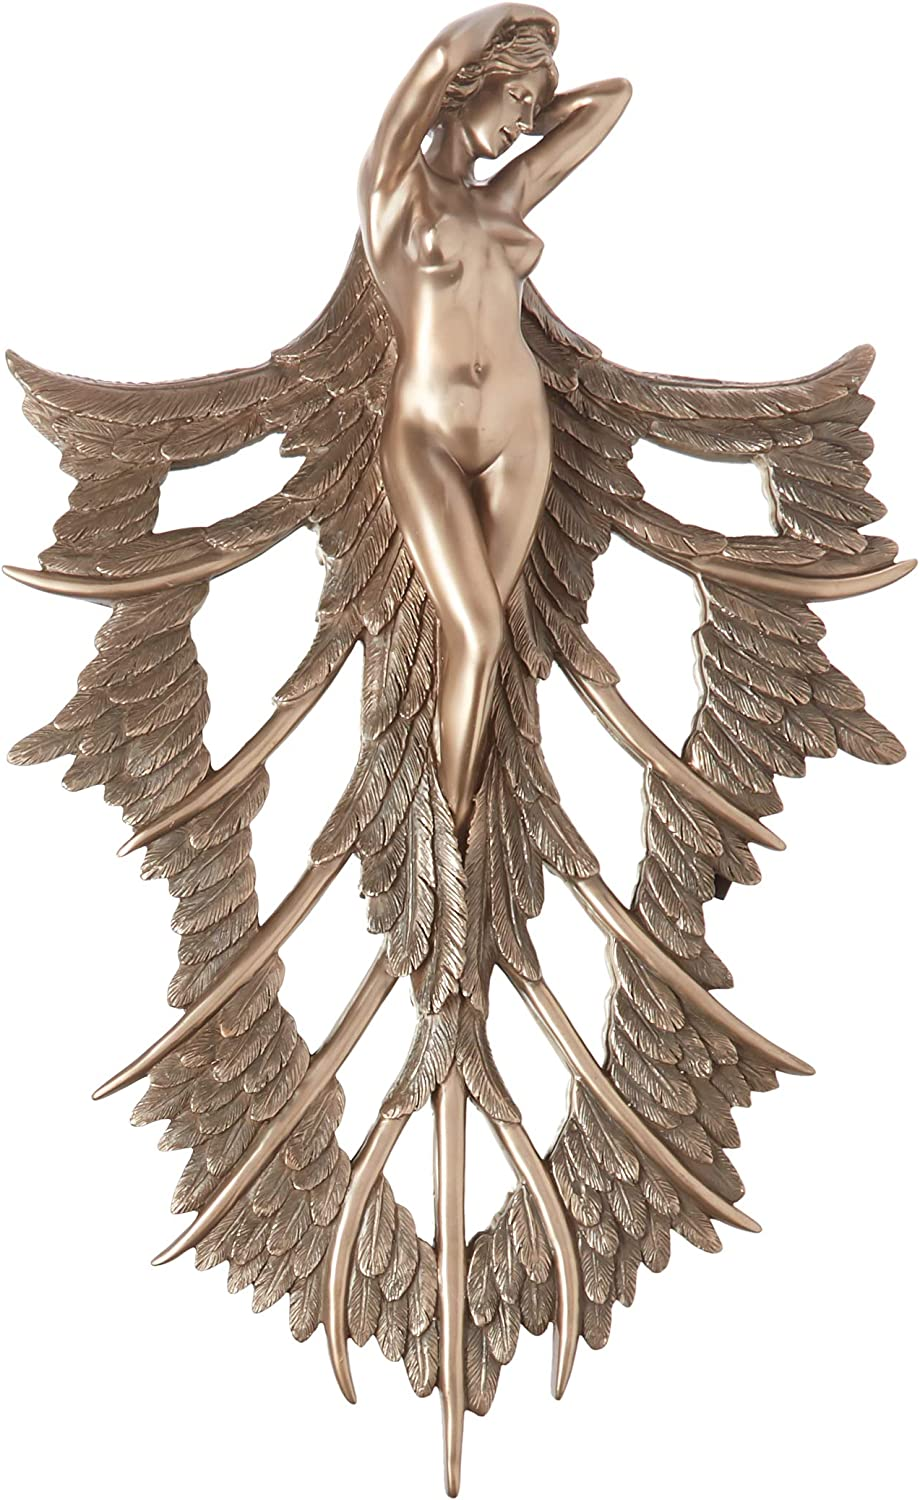 Design Toscano 70% OFF Outlet Angelic Wings Wall of Sculpture High material Nature